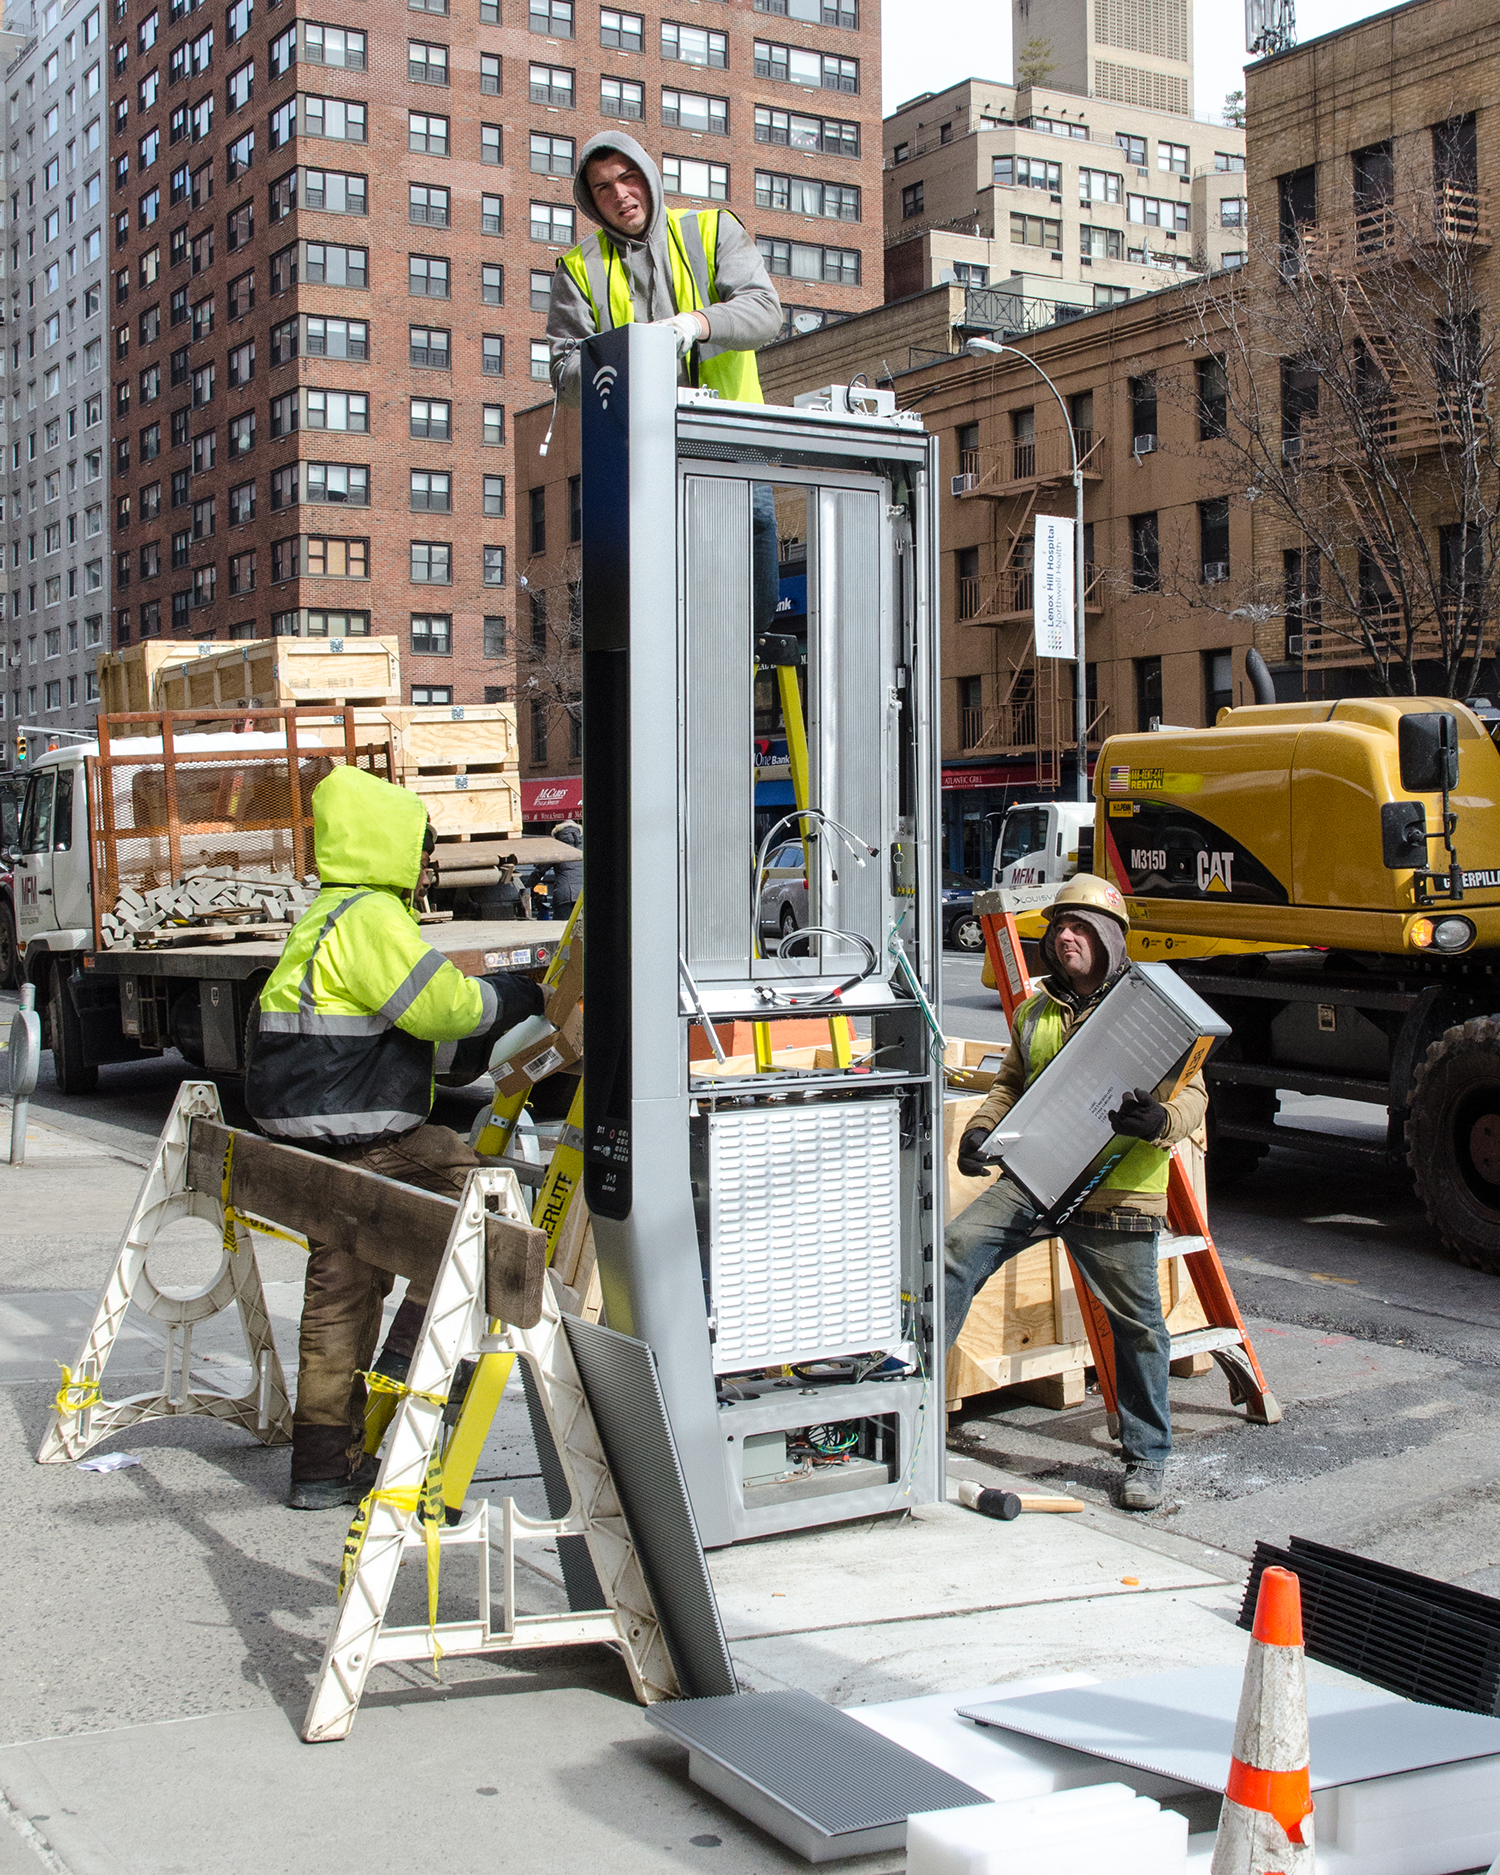 The innards of a LinkNYC kiosk. Credit: Edward Blake/Flickr